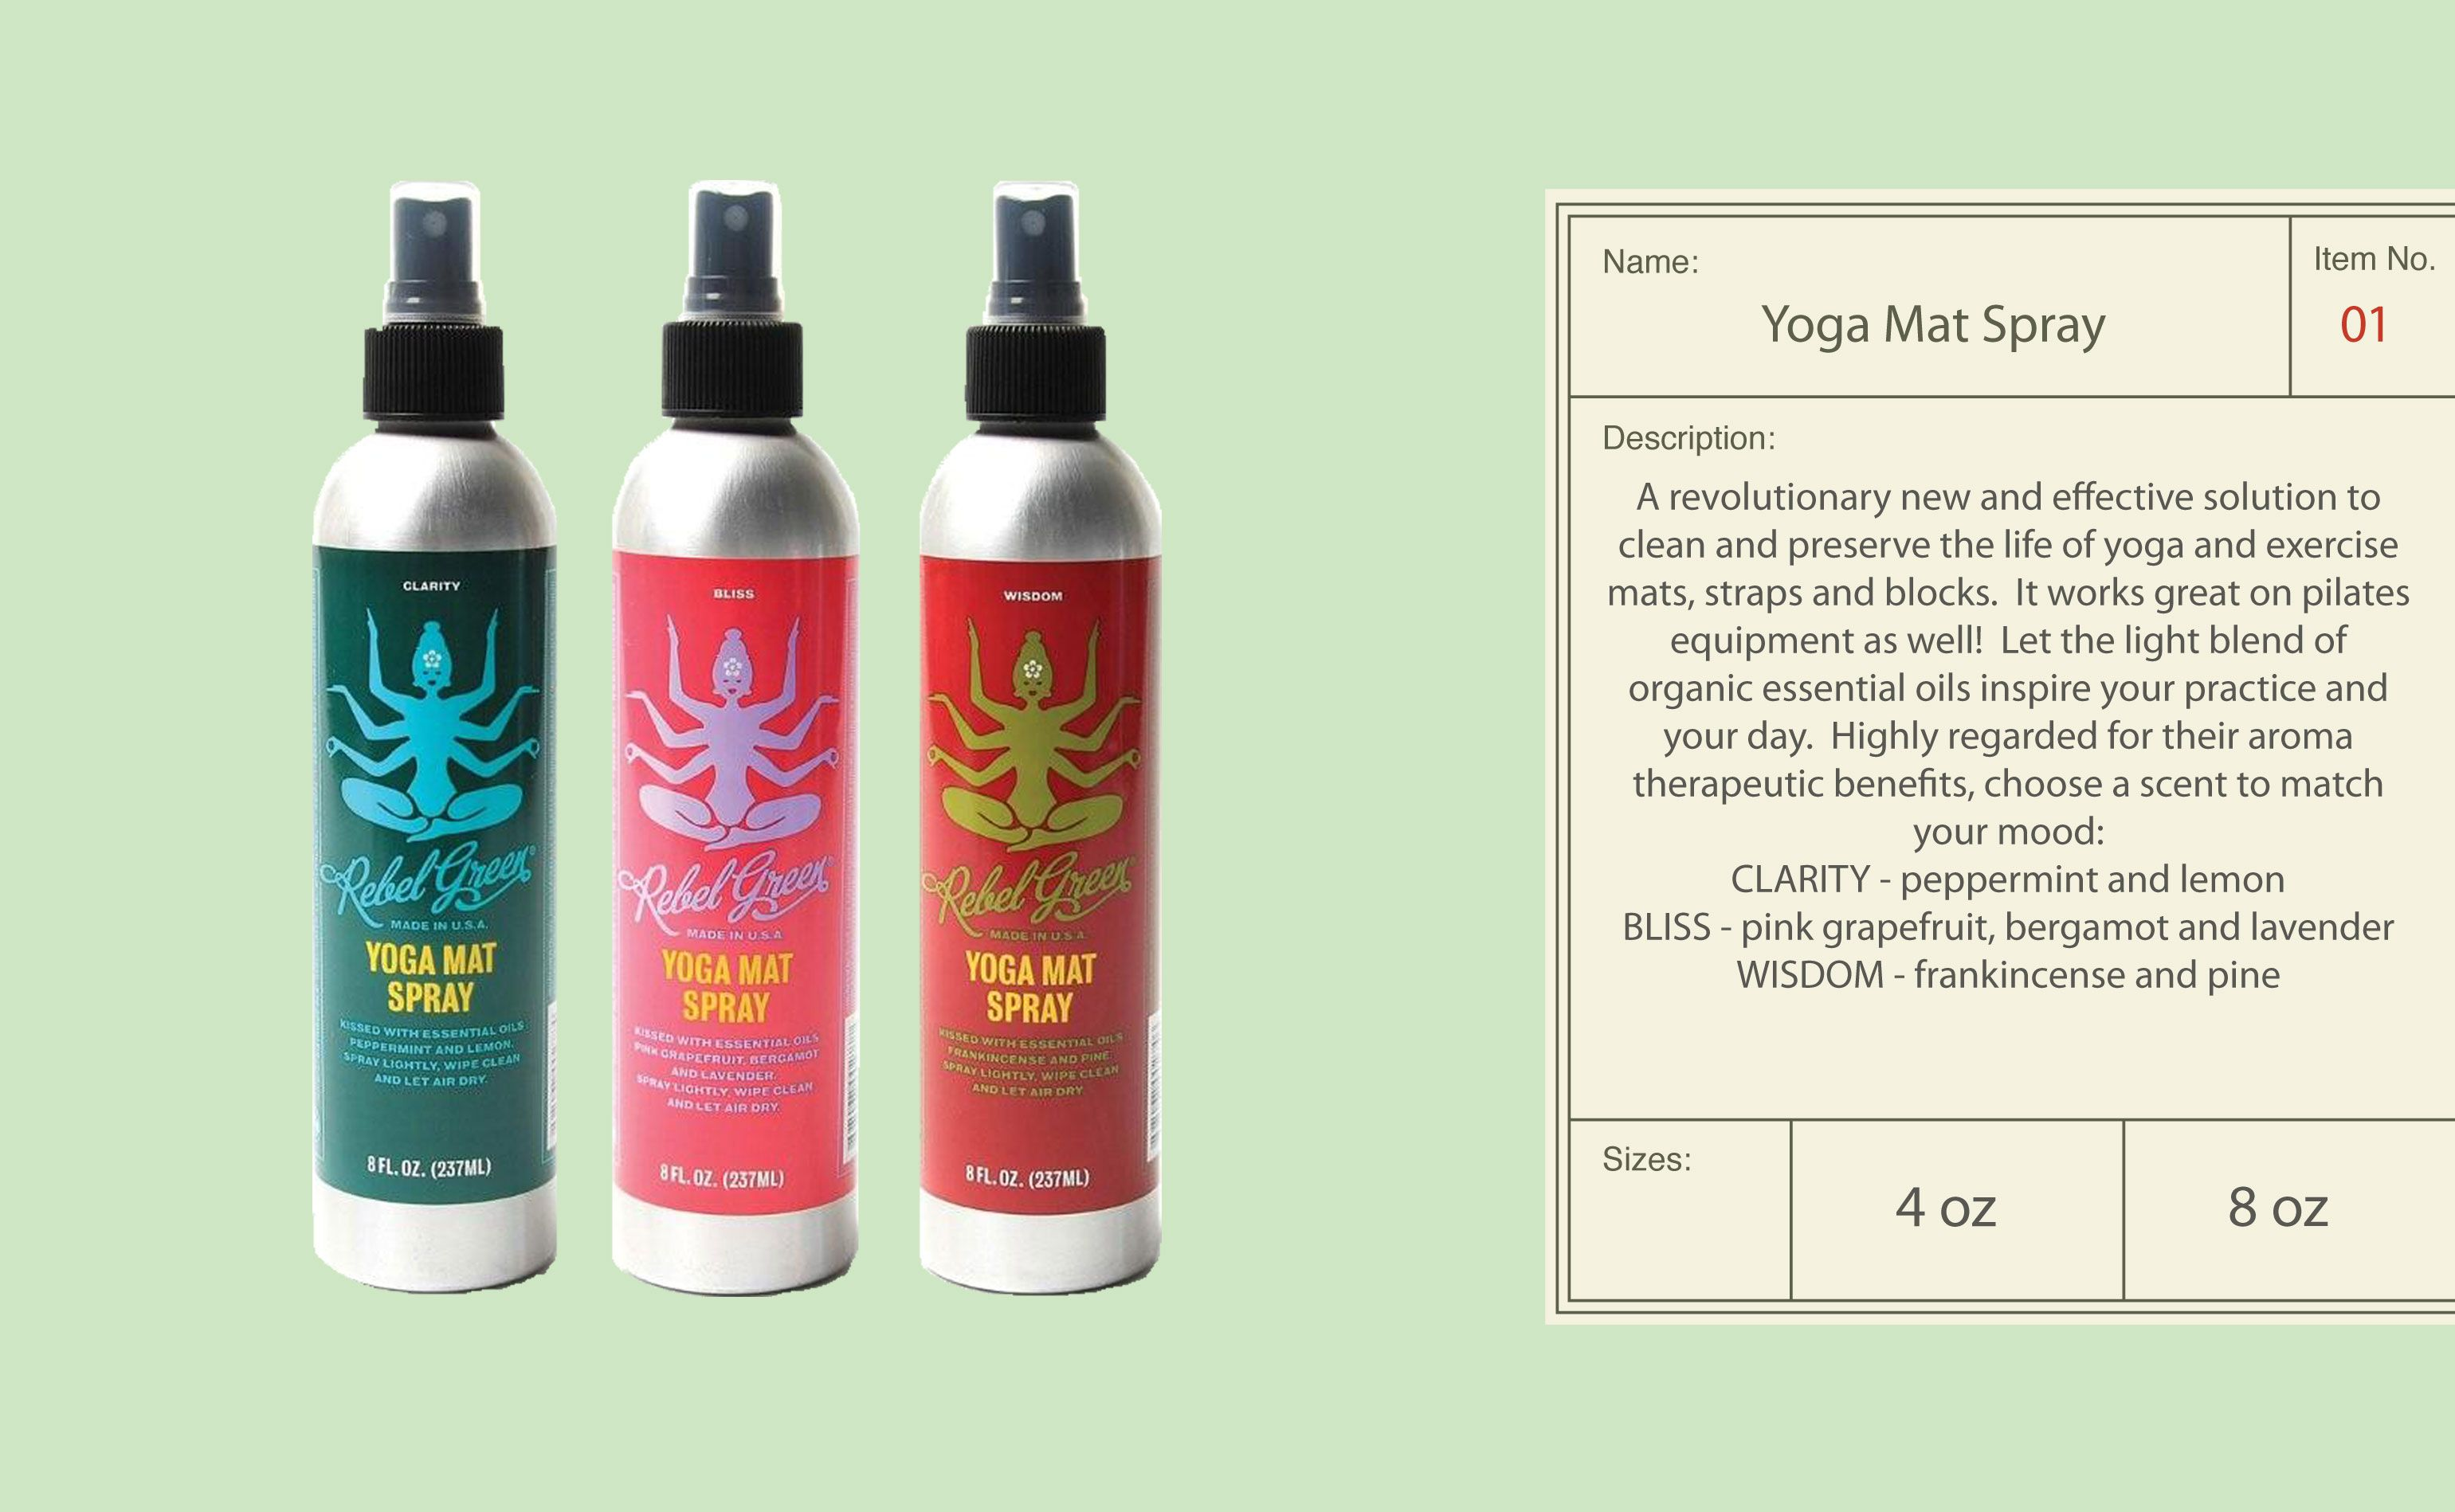 Great yoga mat spray that helps to clean your mat